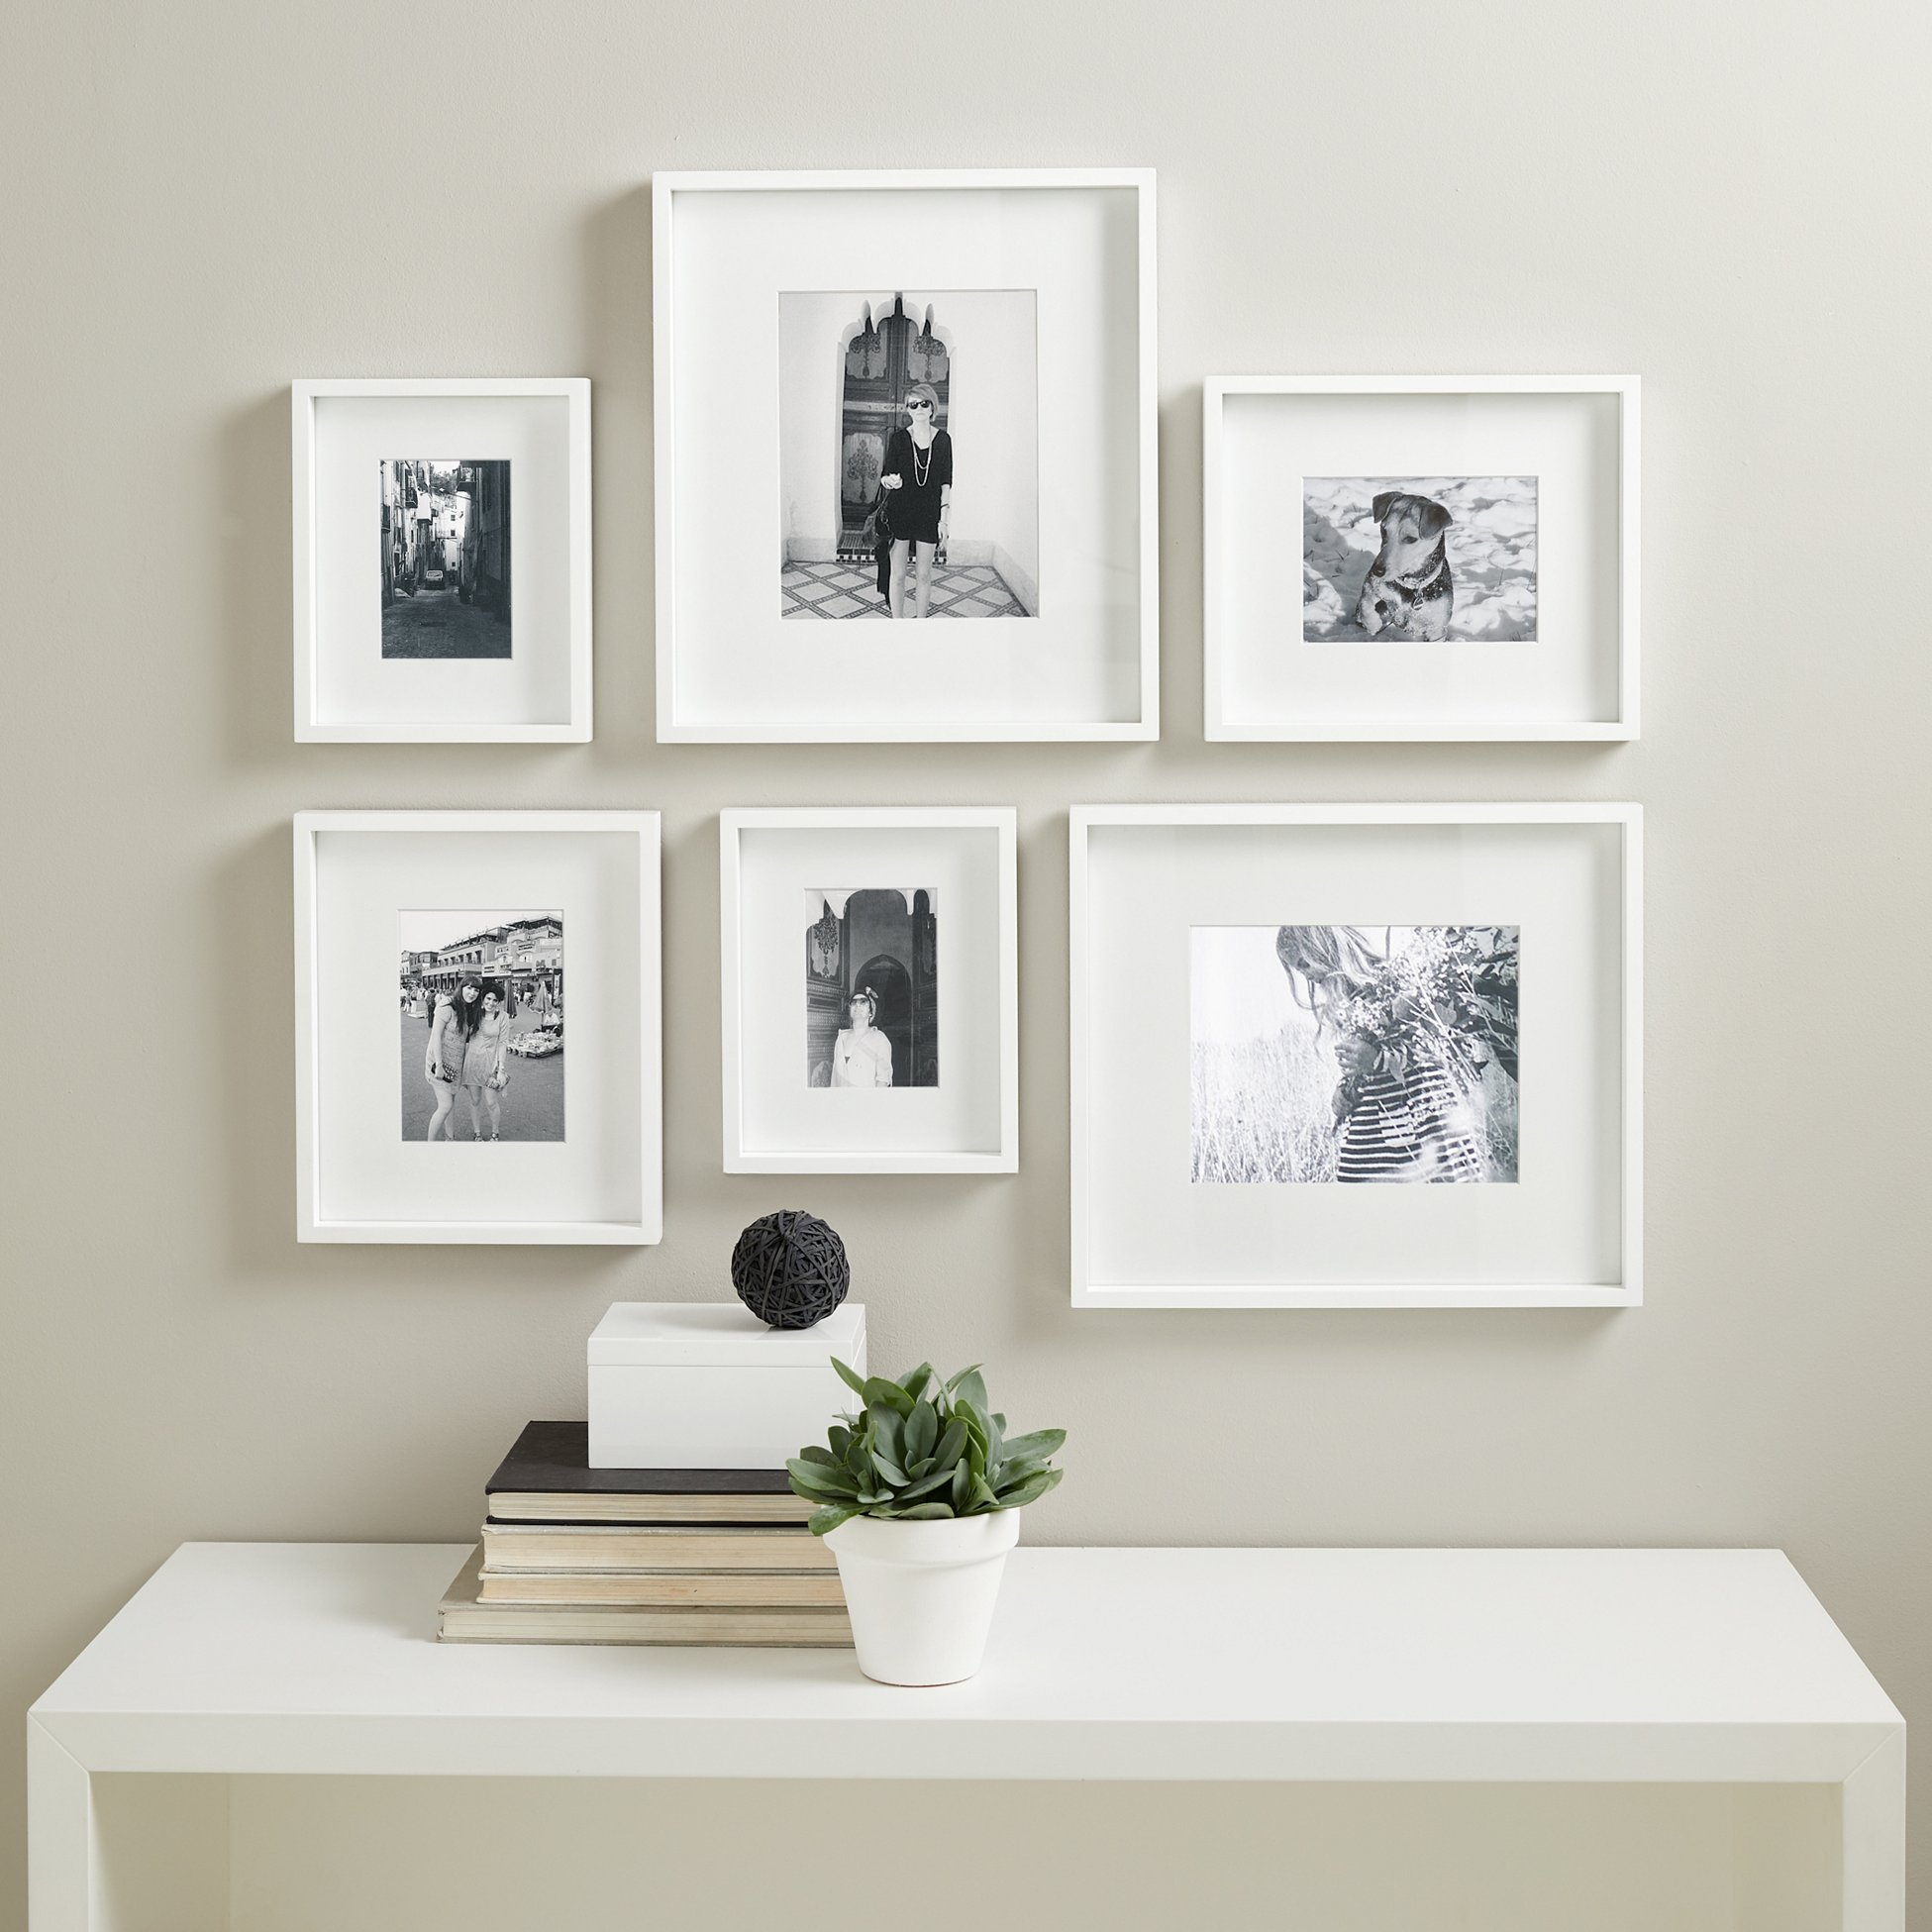 White Company picture gallery